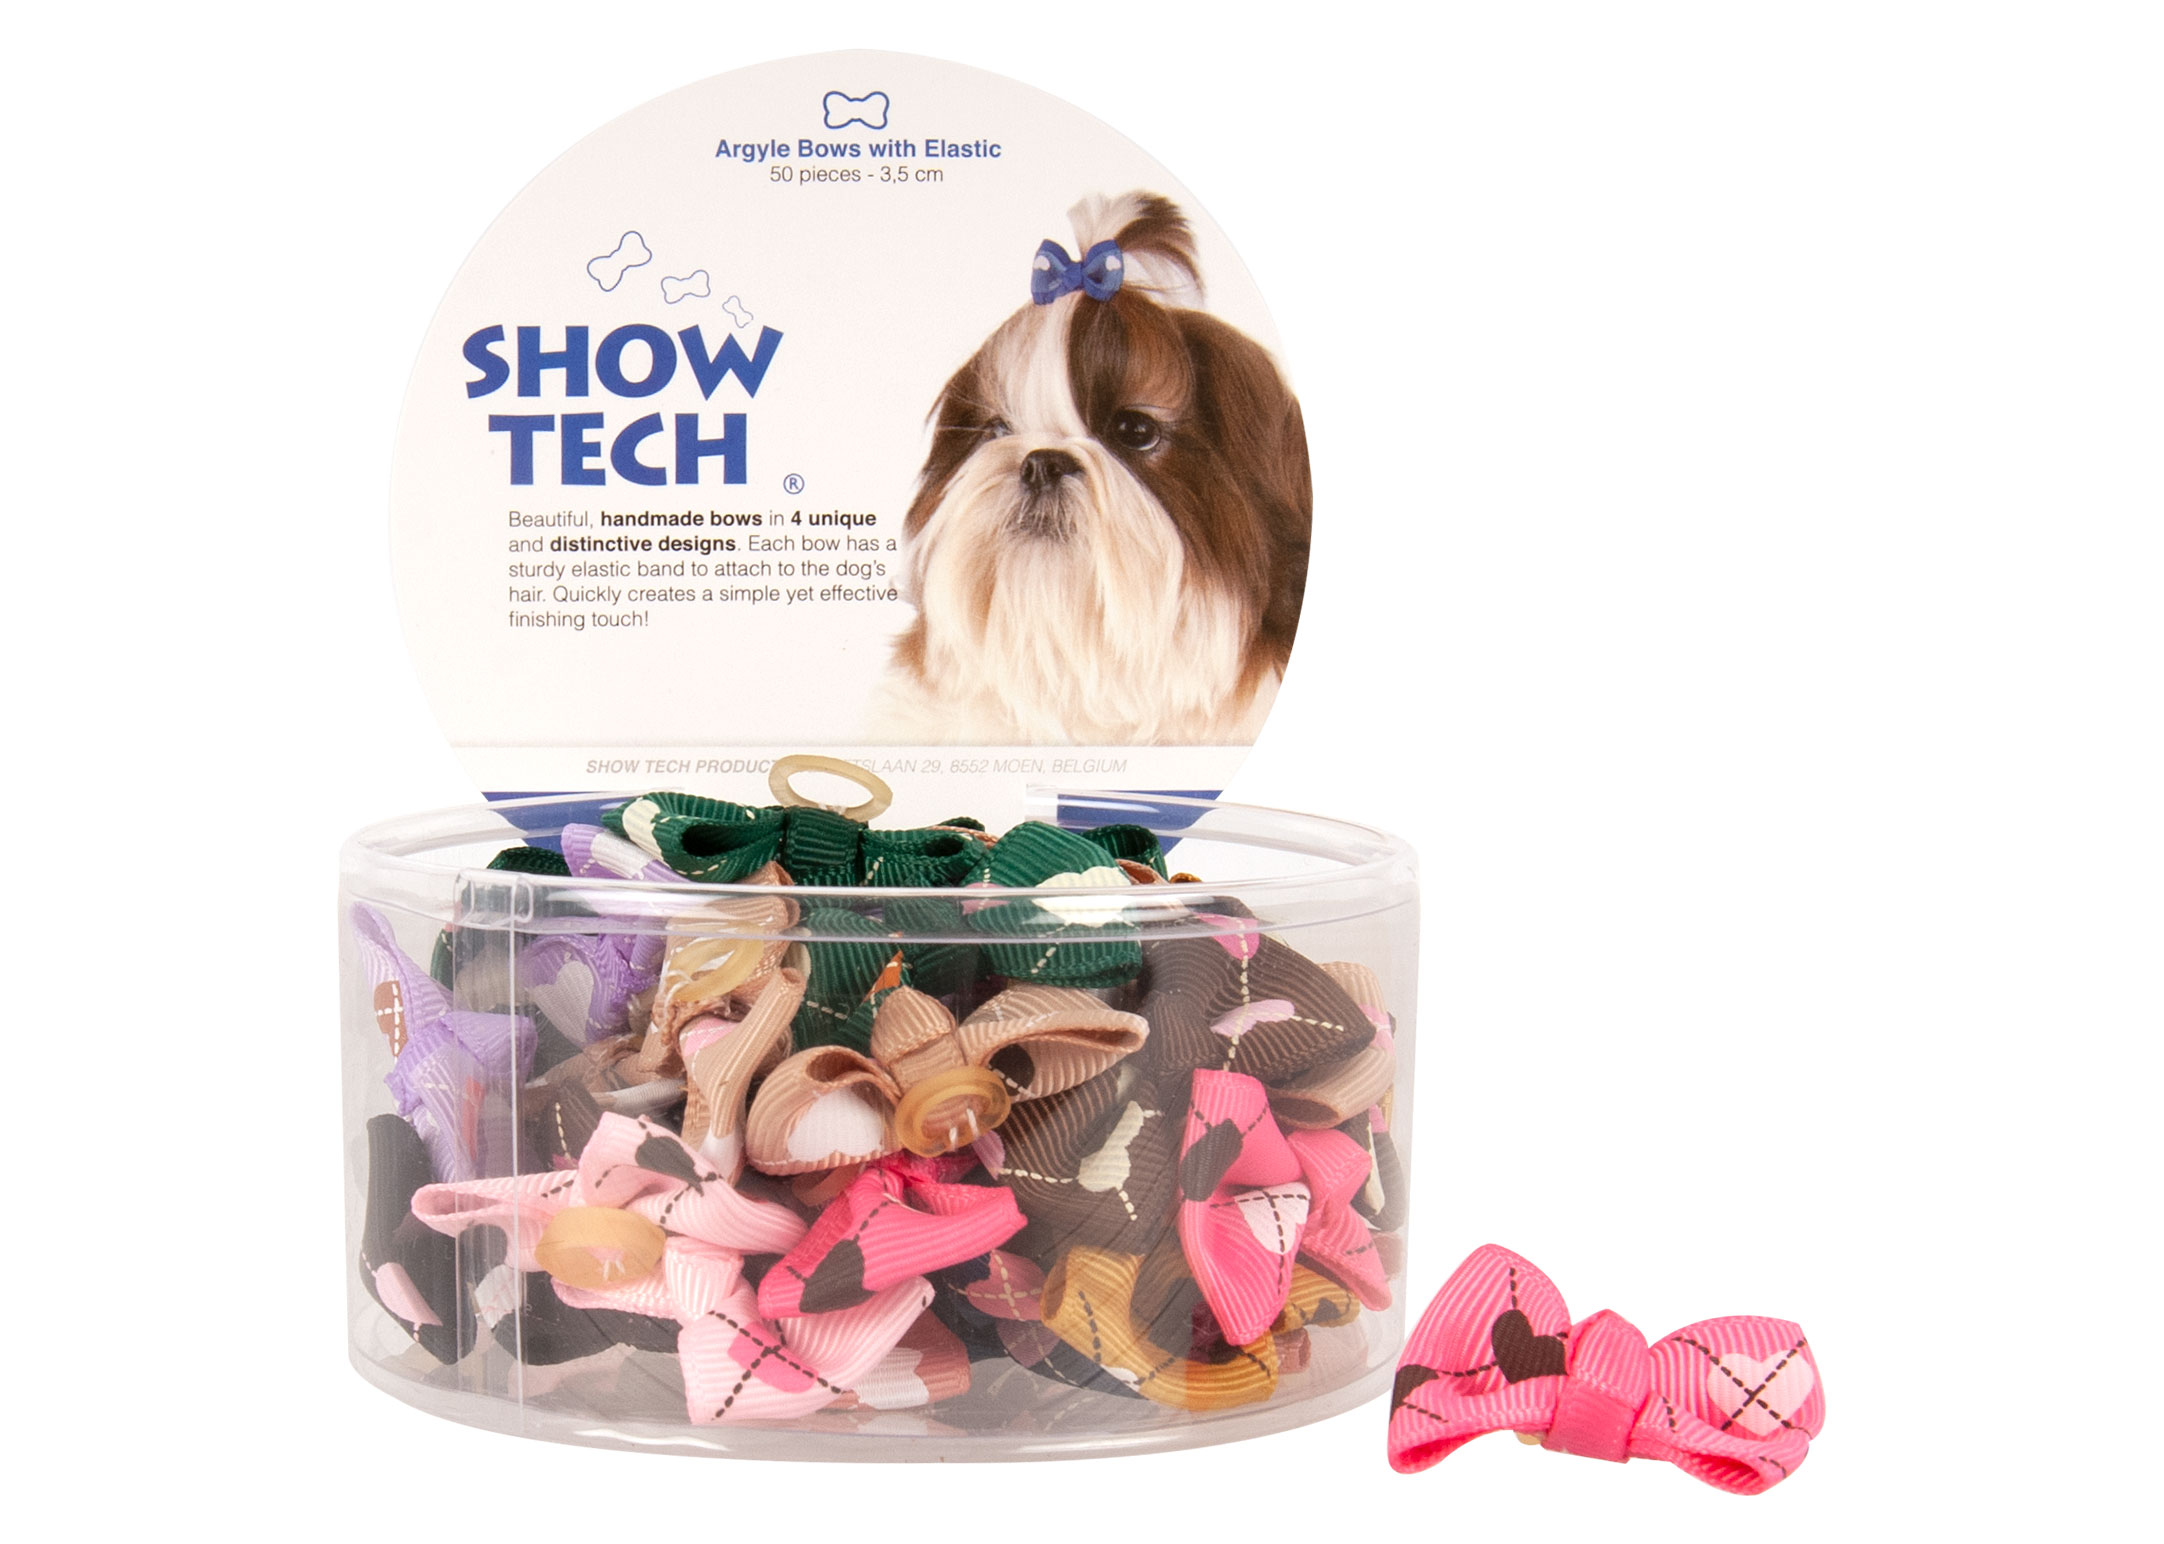 Show Tech Argyle Bows with Elastic 50 pcs Bows